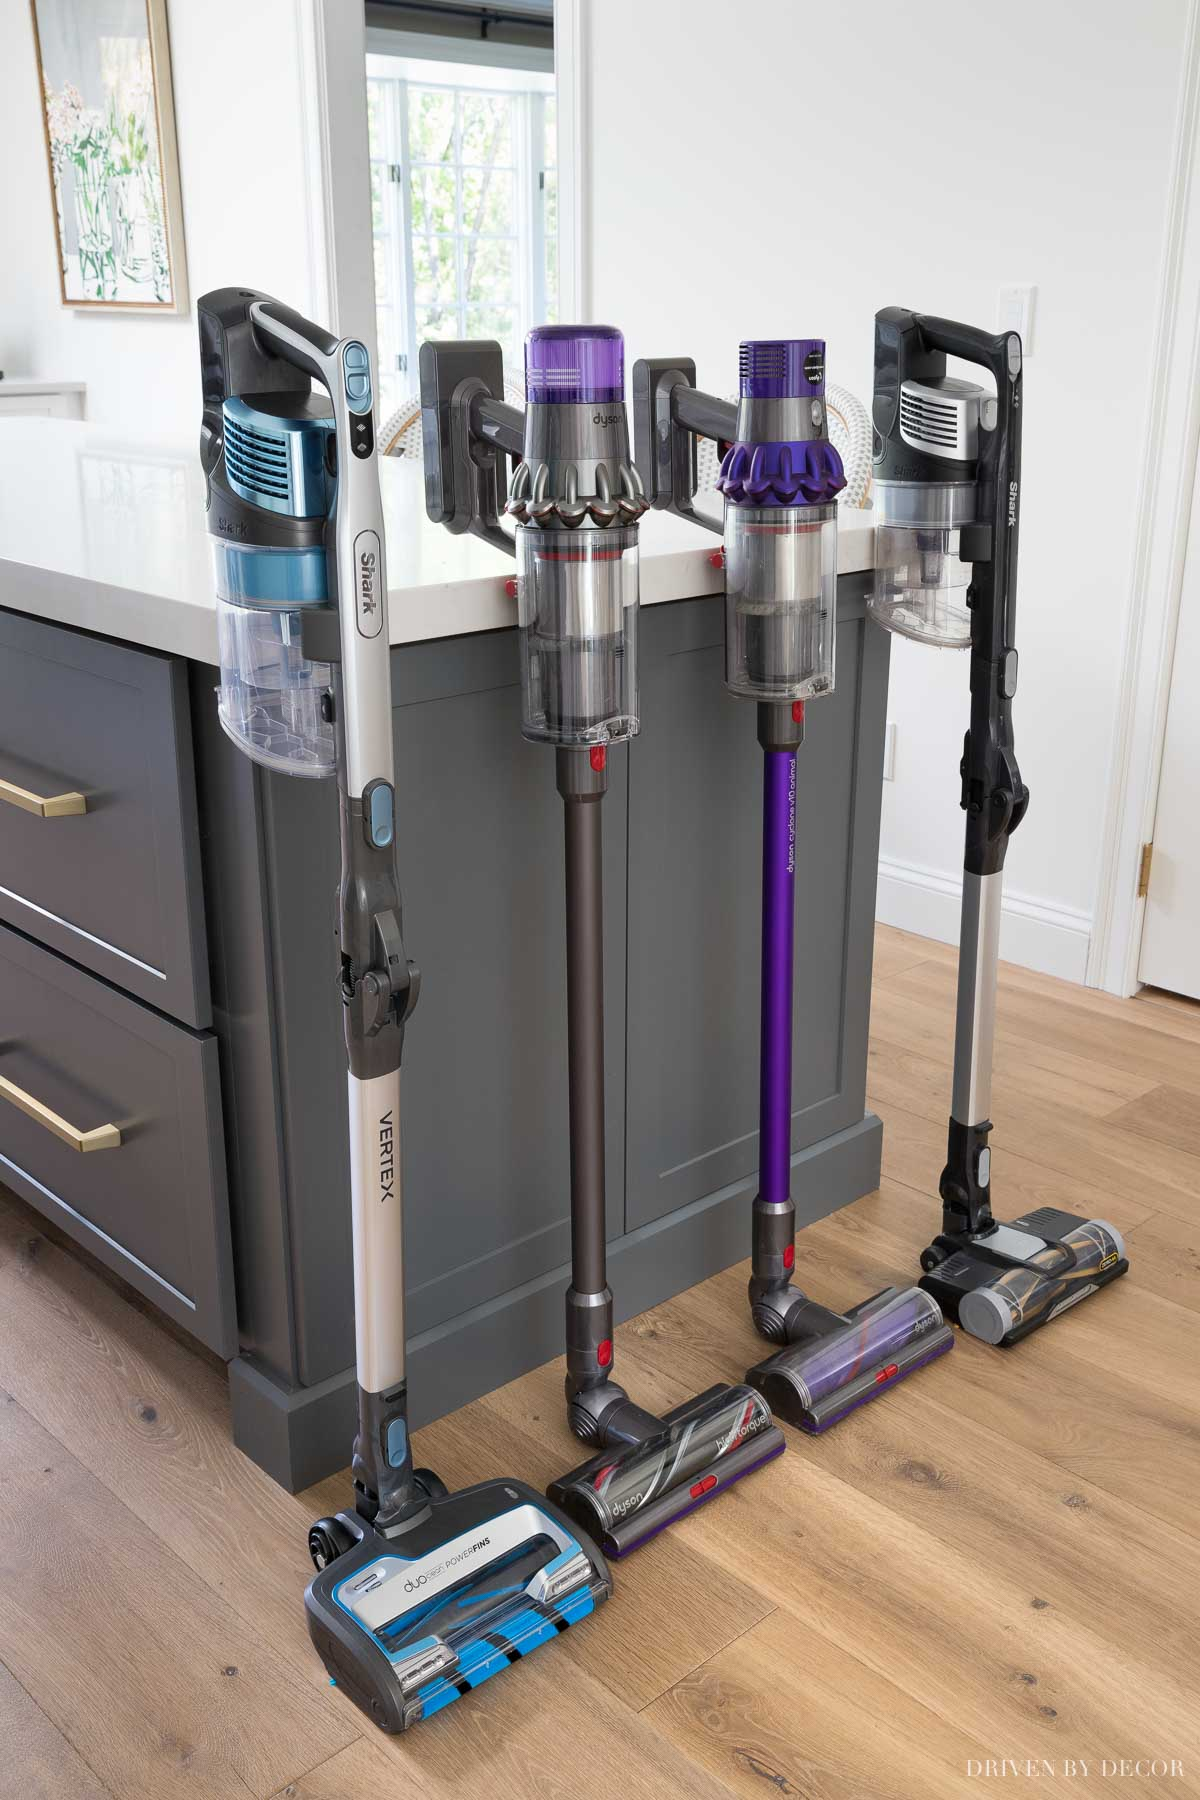 Shark vs Dyson cordless vacuums - how they compare! A thorough review!